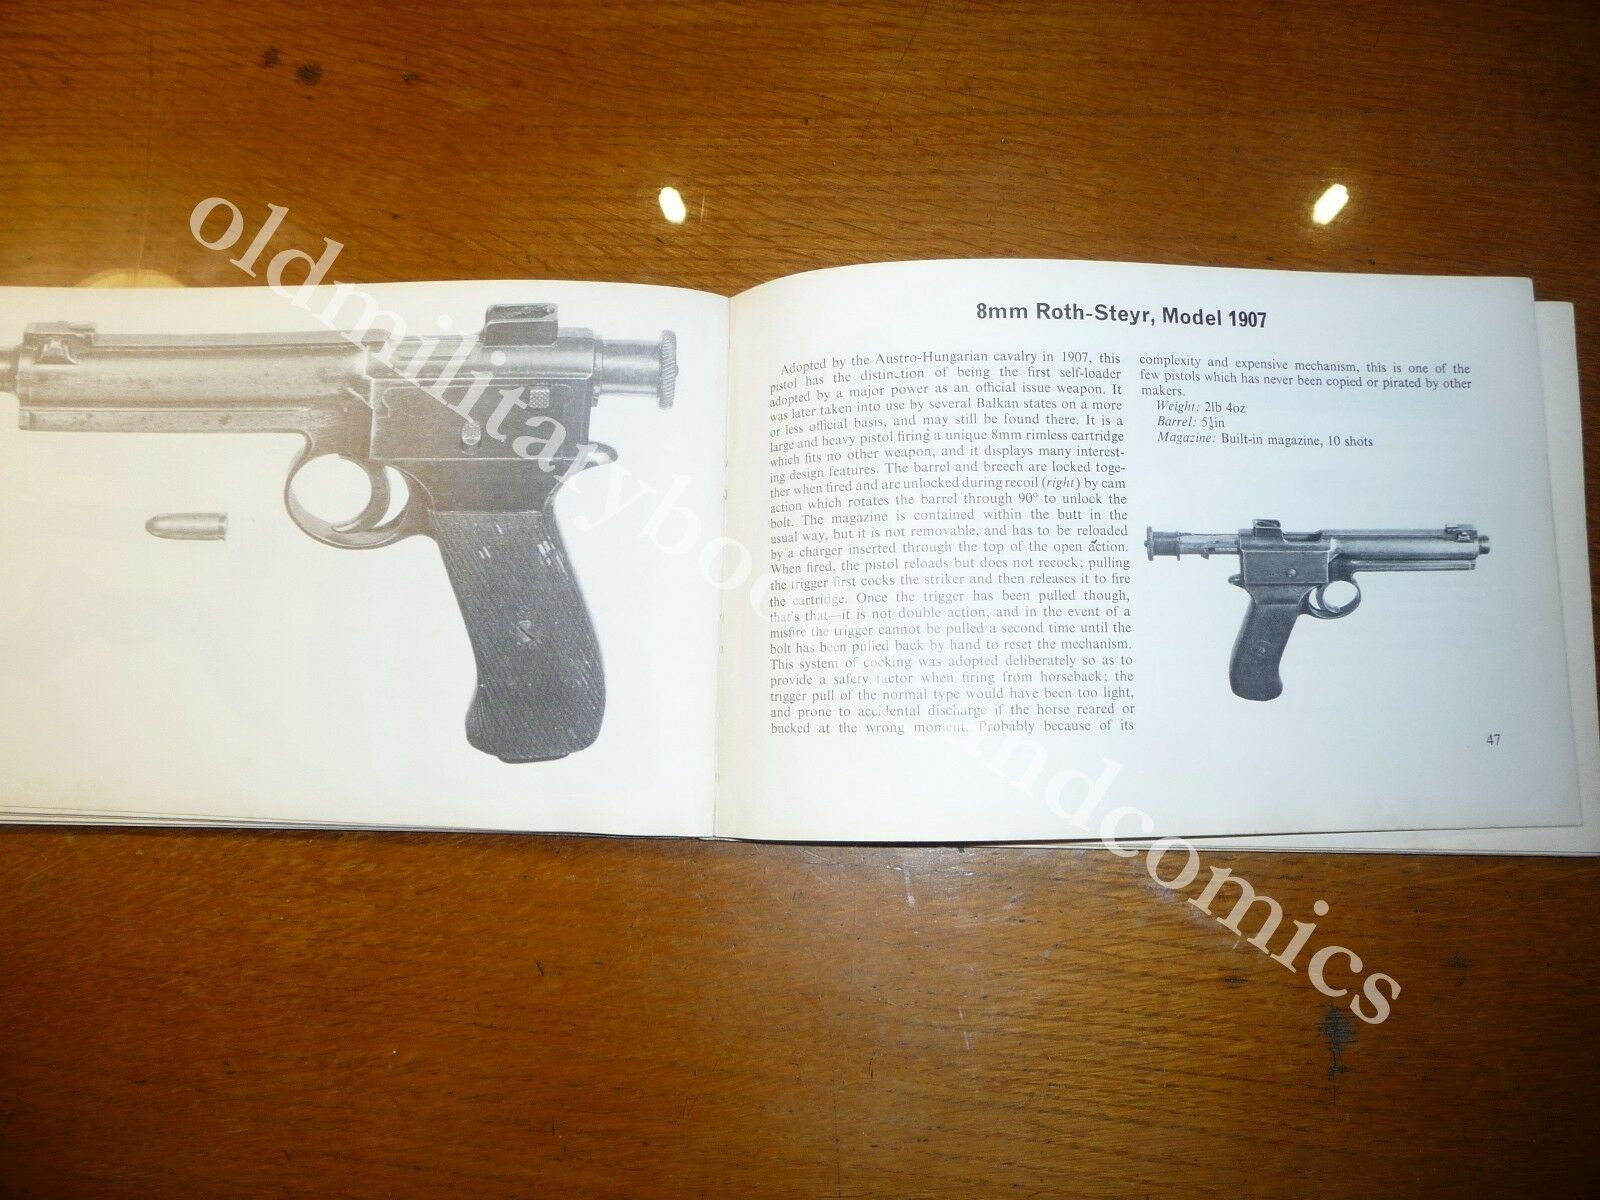 MILITARY PISTOLS AND REVOLVERS THE HANDGUNS OF THE TWO WORLD WARS I.V. HOGG